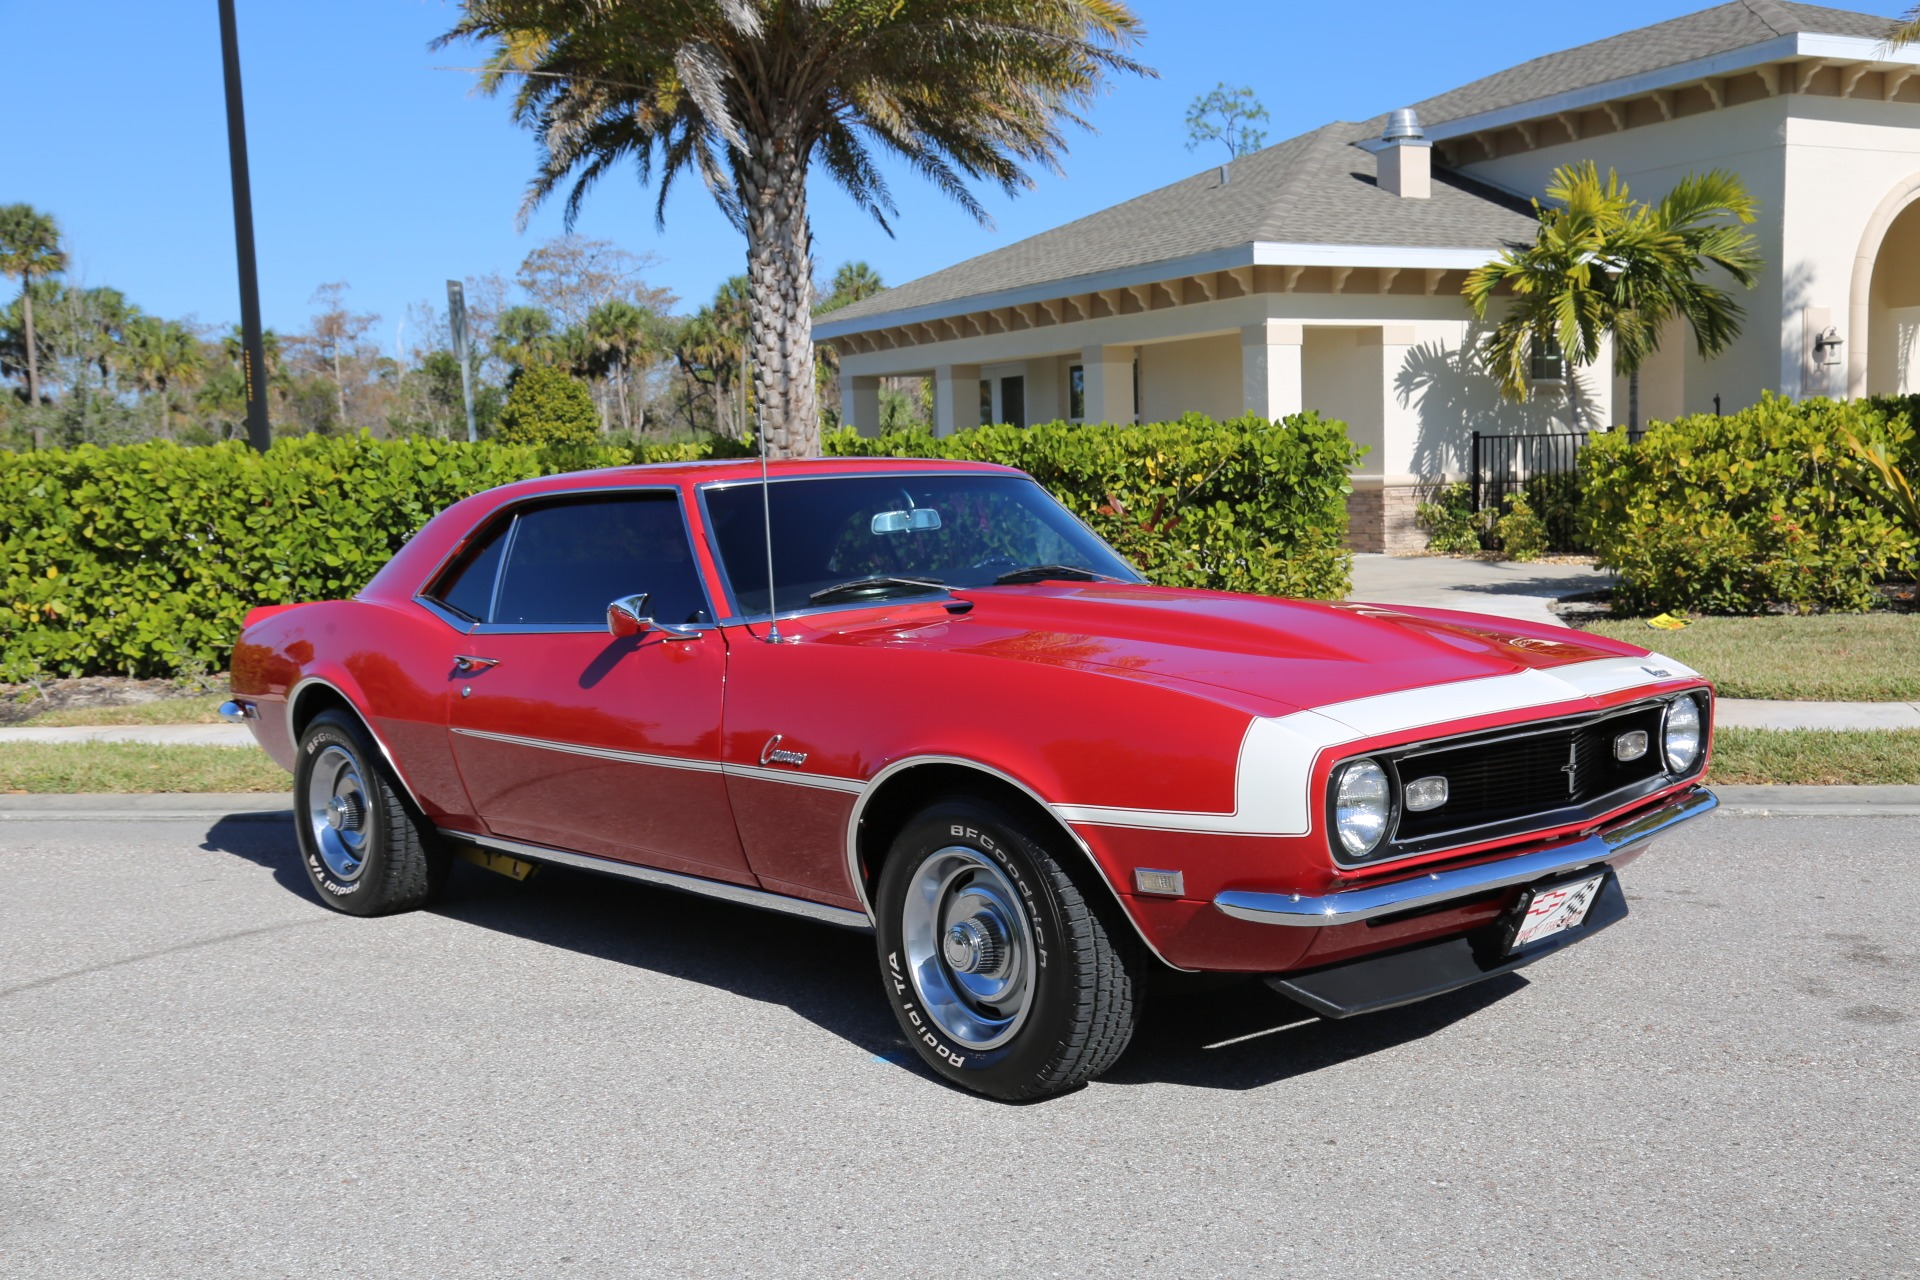 Used 1968 Chevrolet Camaro Camaro V8 350 Auto for sale Sold at Muscle Cars for Sale Inc. in Fort Myers FL 33912 4